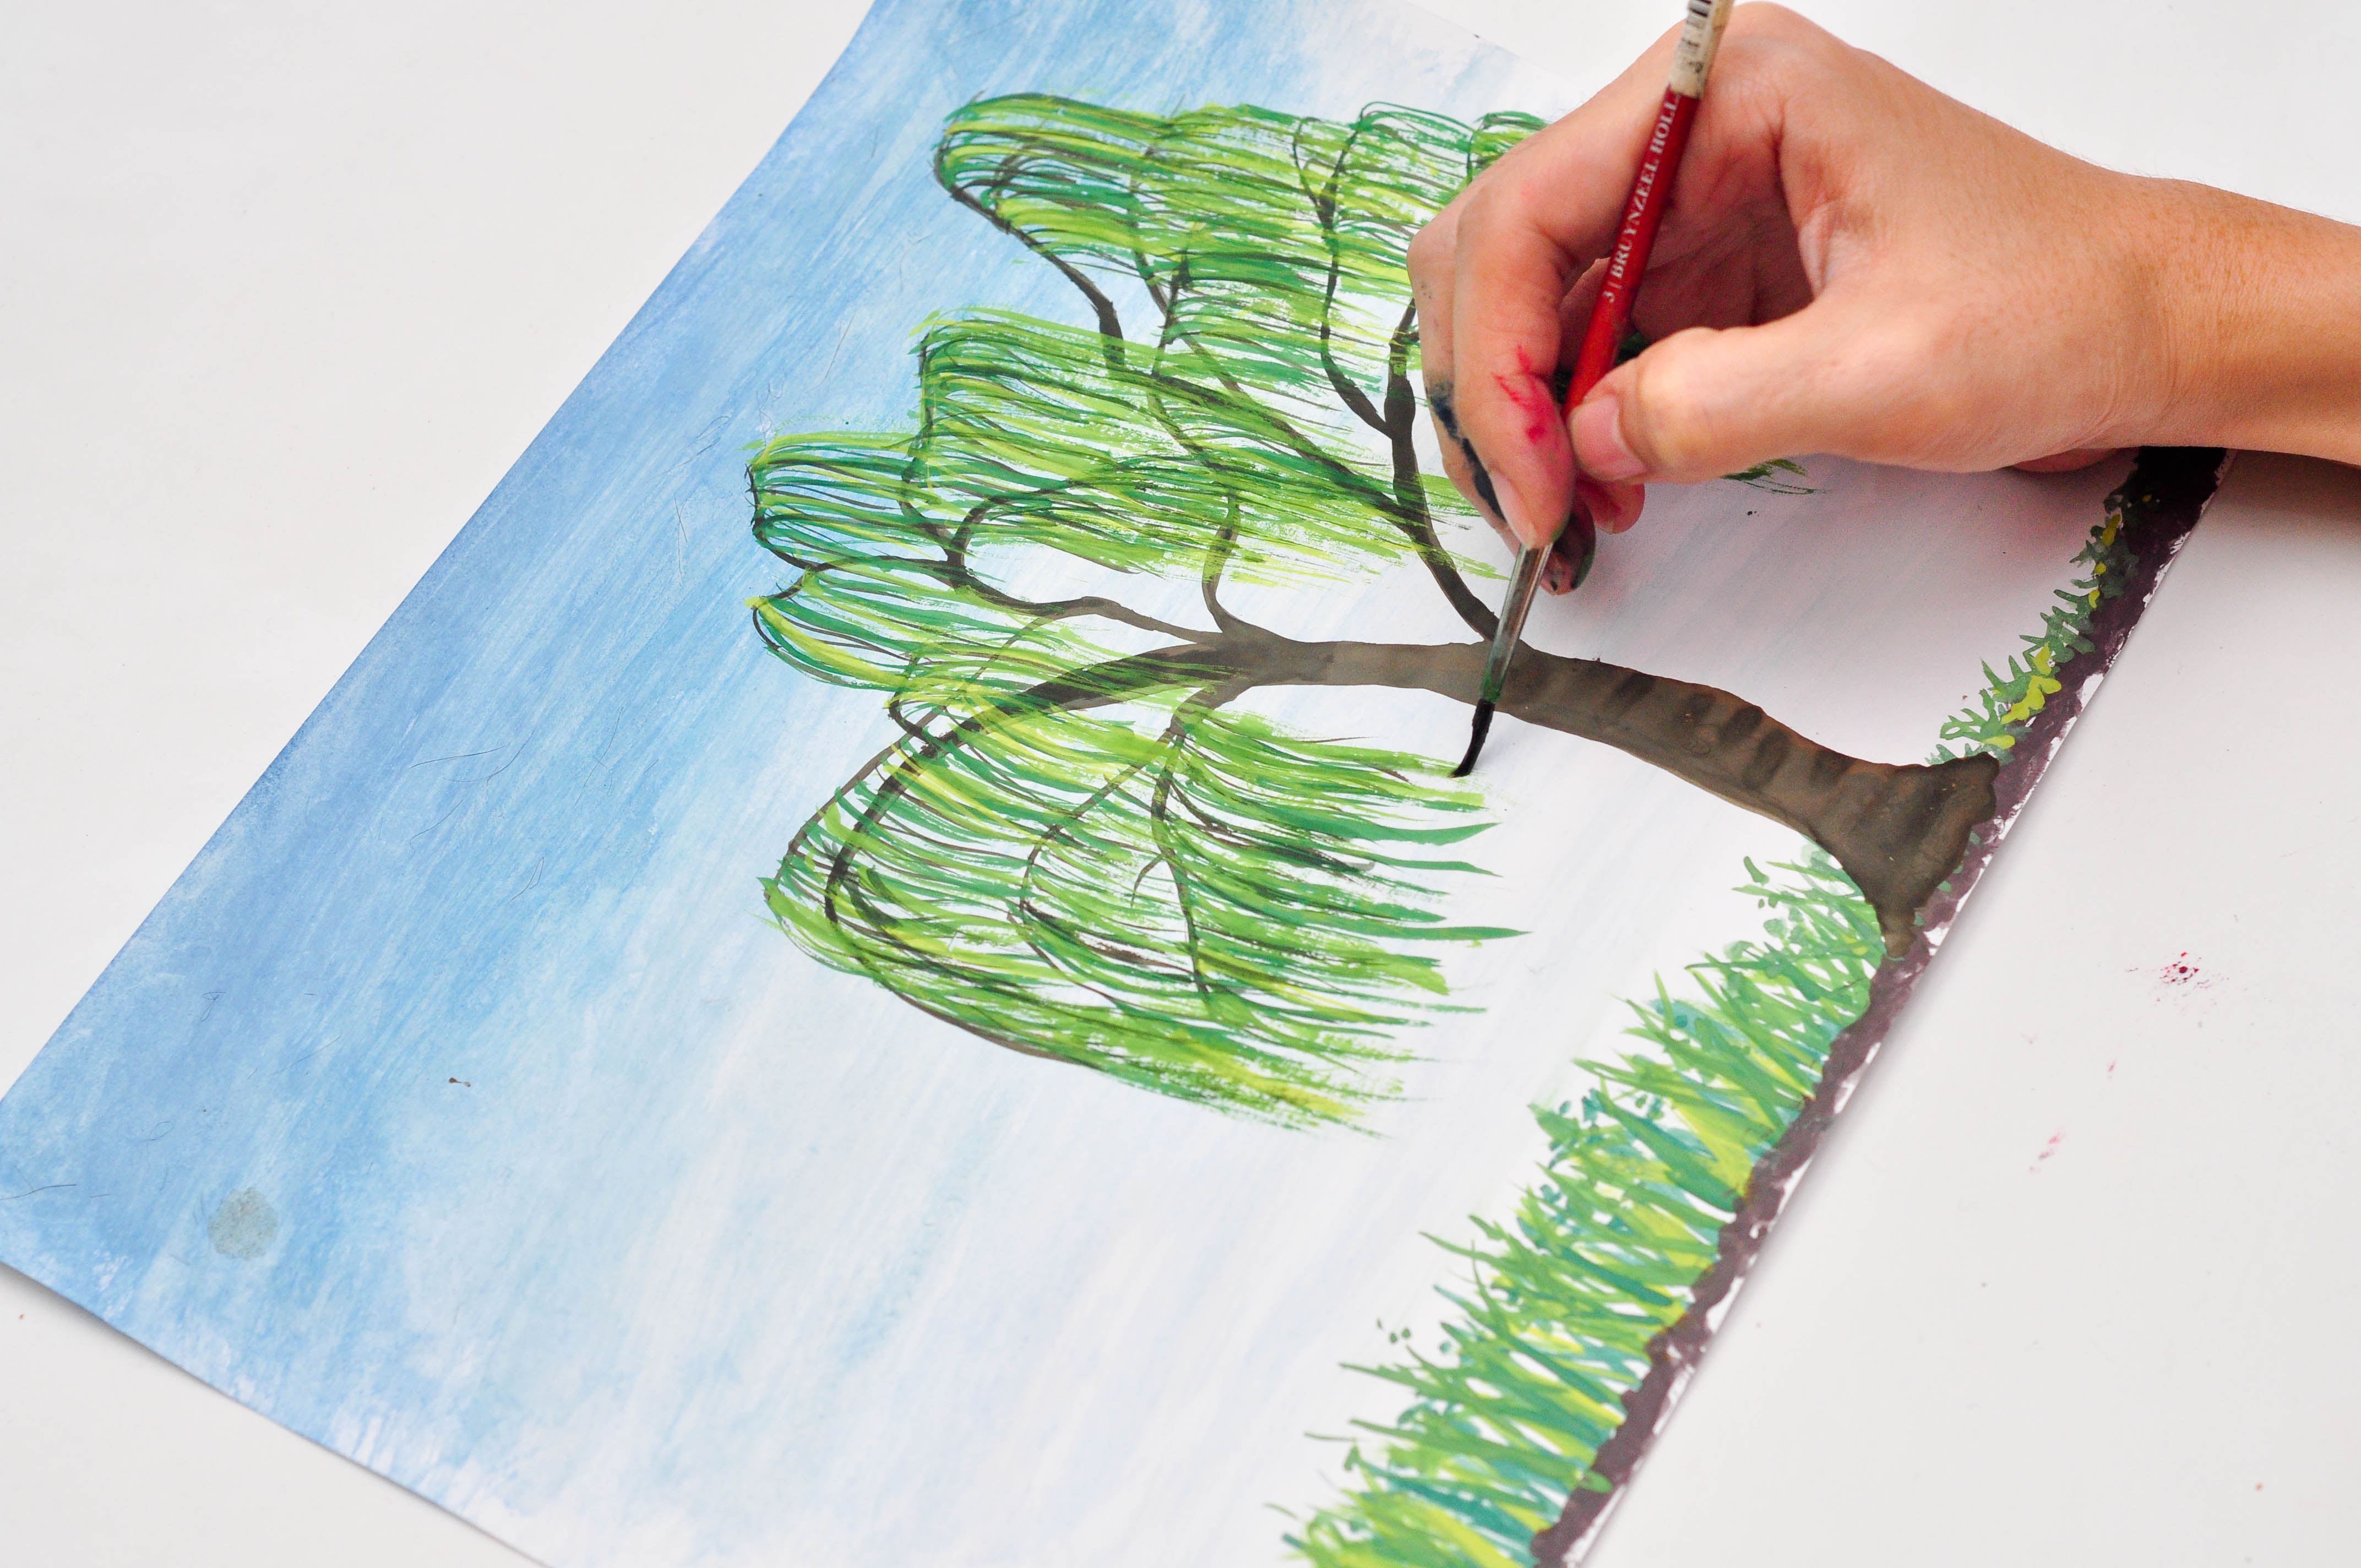 Willow Tree Drawing at GetDrawings.com | Free for personal use ...